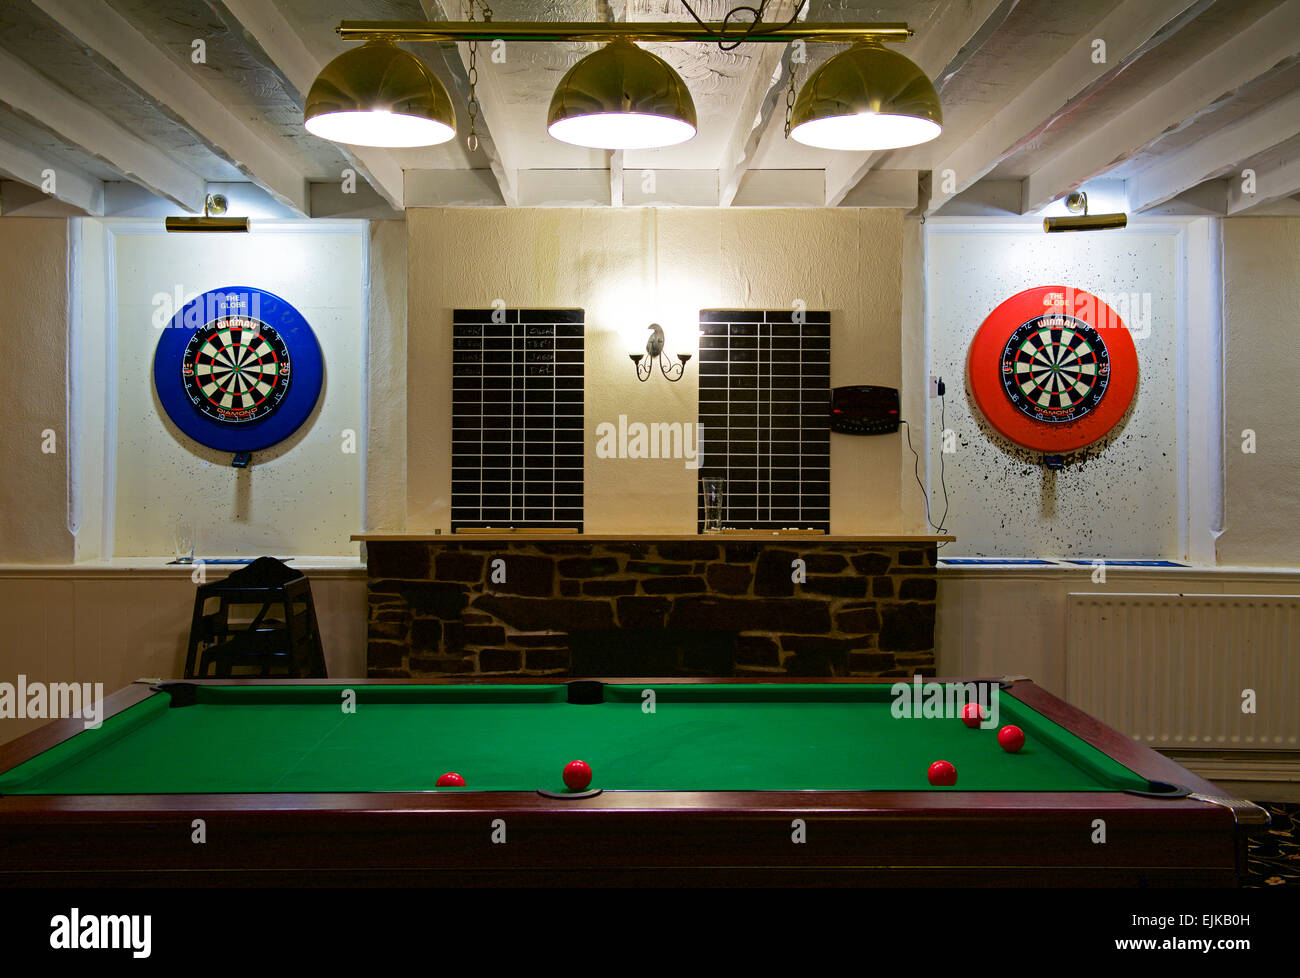 Dartboards and pool table in pub, England, UK - Stock Image